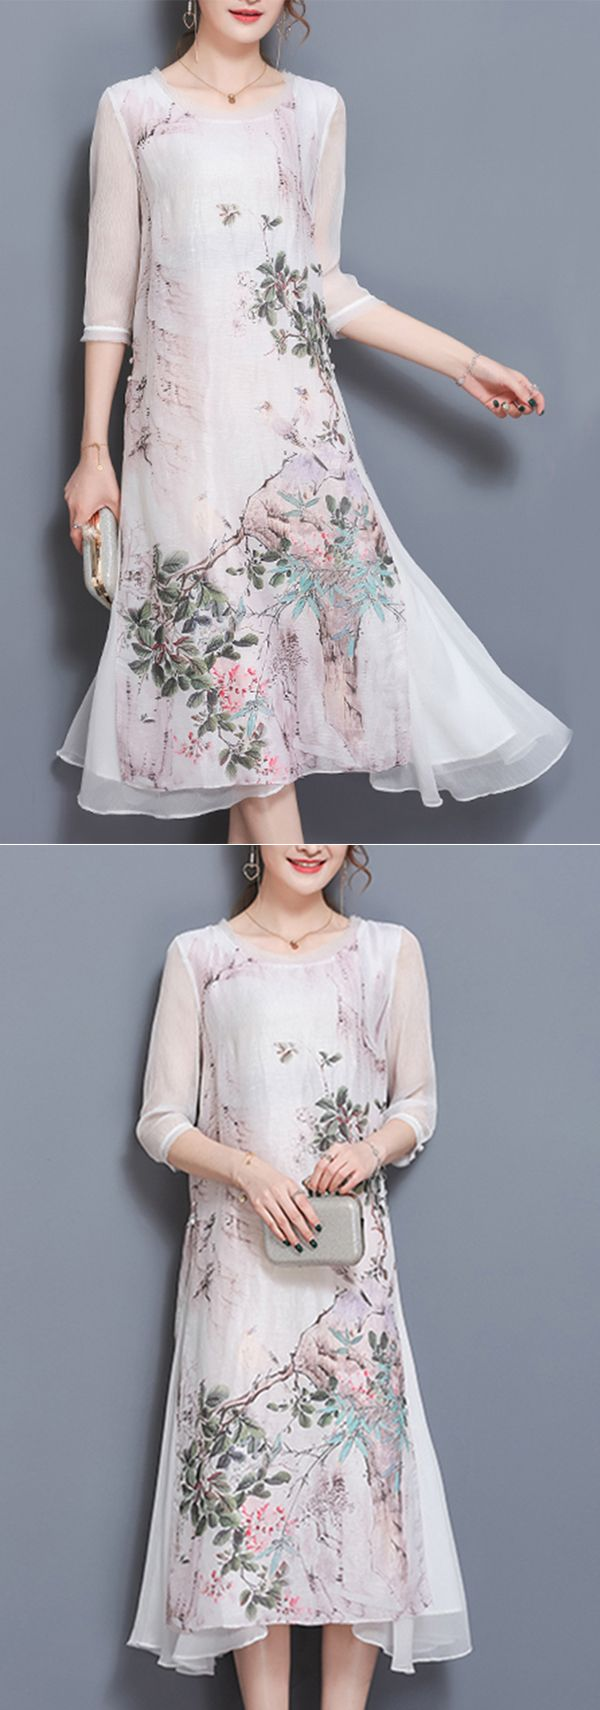 US$ 38.87 Vintage Casual Women Half Sleeve Print Dresses - here is where you can find that Perfect Gift for Friends and Family Members